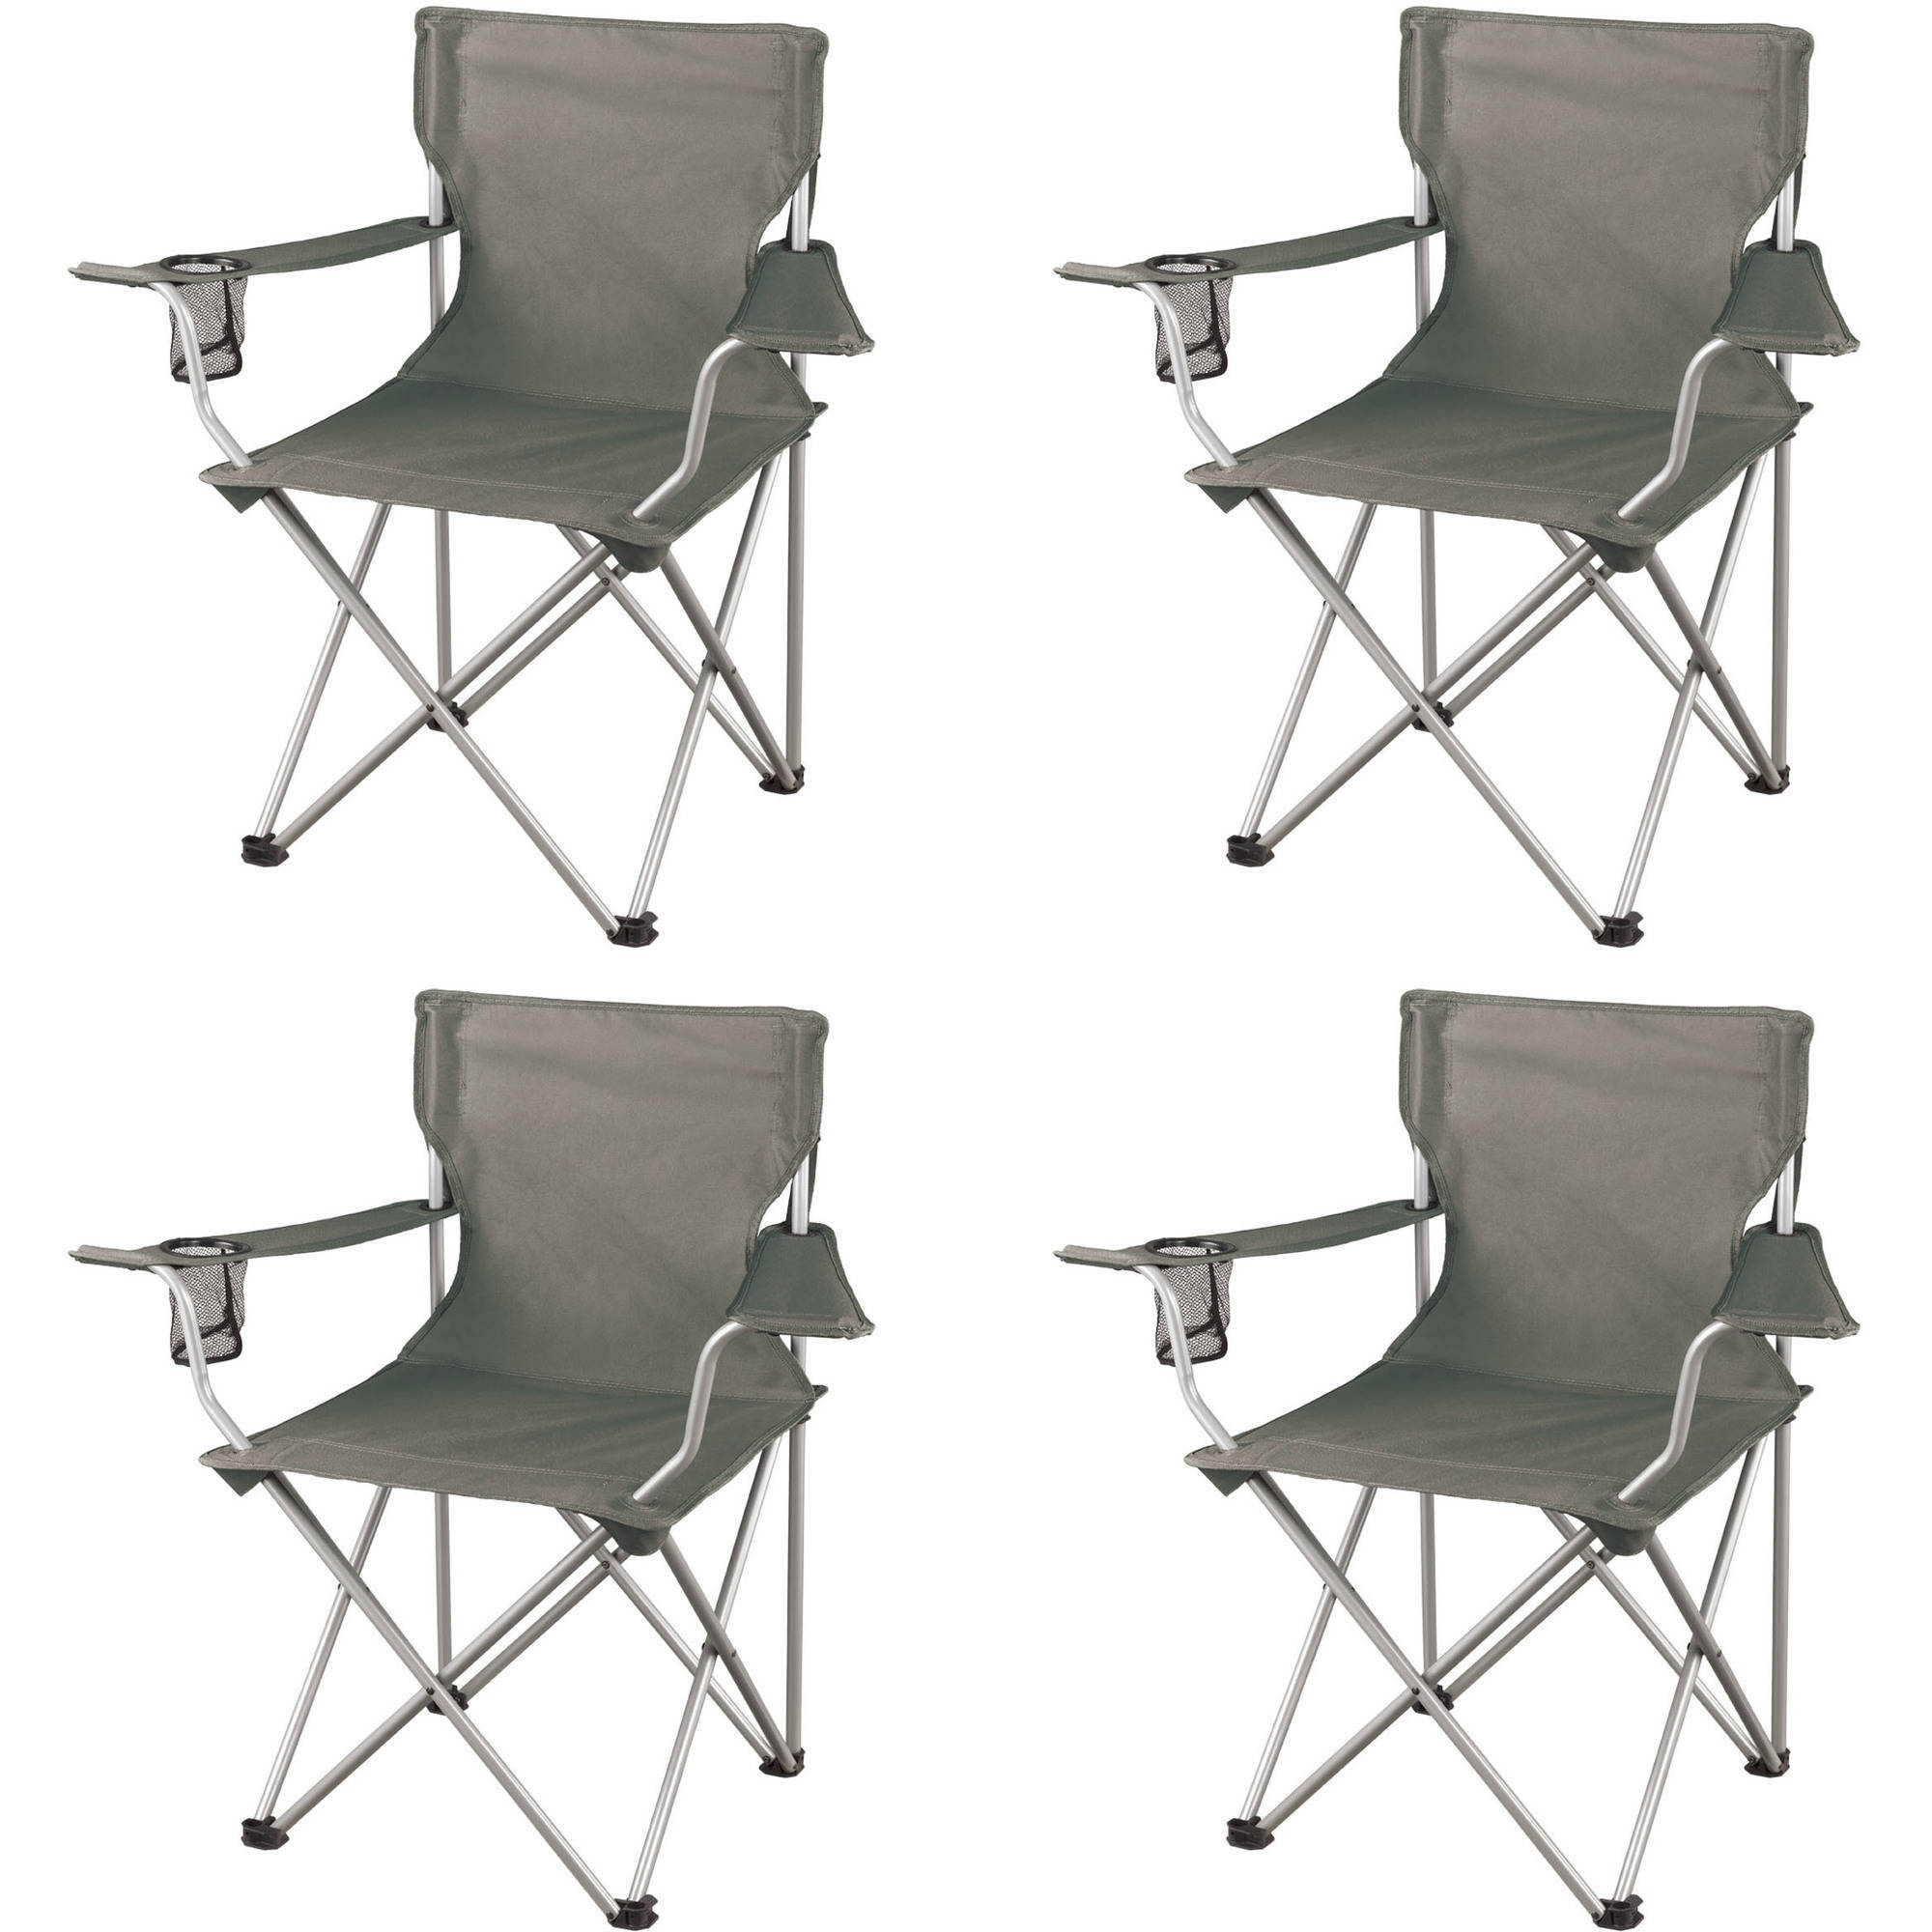 Fold Up Chair With Canopy Ozark Trail Classic Folding Camp Chairs Set Of 4